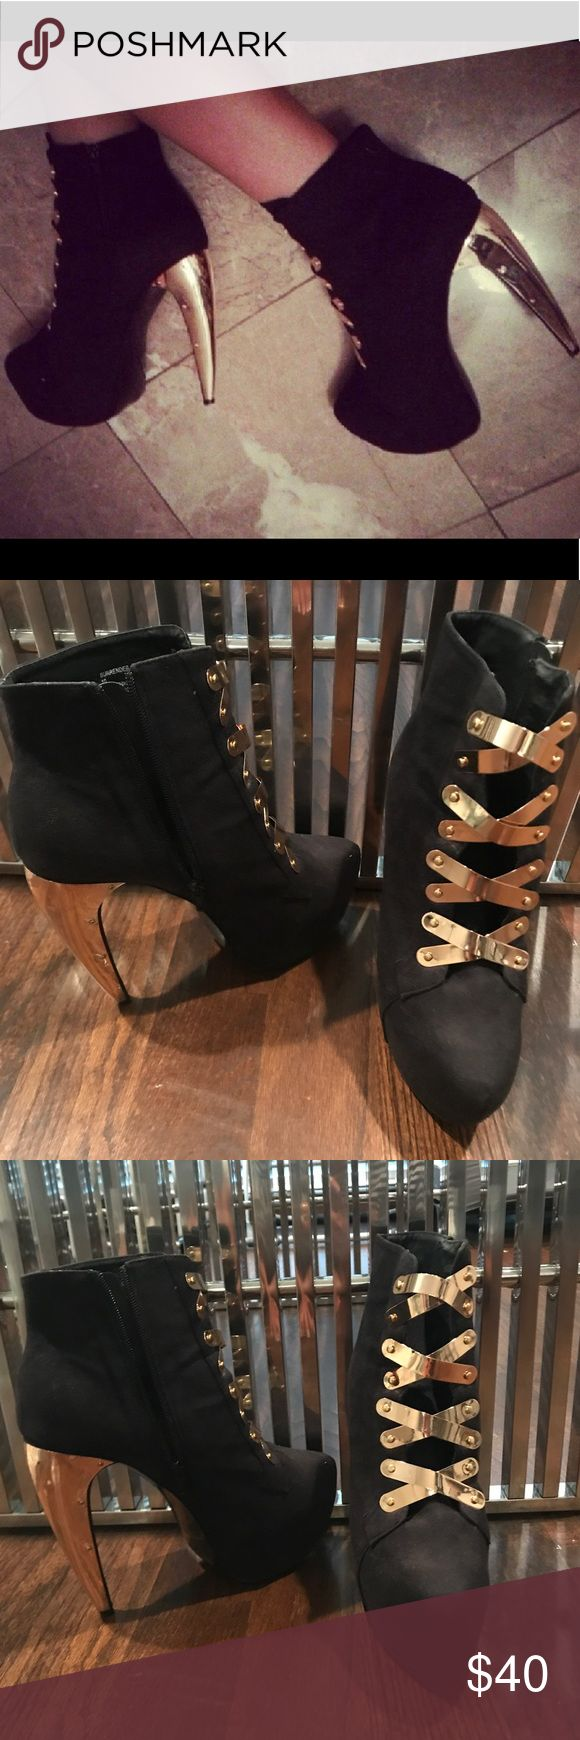 "Privileged platform boots with gold heel/details Black microsuede boot with platform heel and gold metal embellishment and details. The heel is gold metal and 7"" high. These are definite fashion statement pieces. Only worn once - excellent condition Privileged Shoes Ankle Boots & Booties"